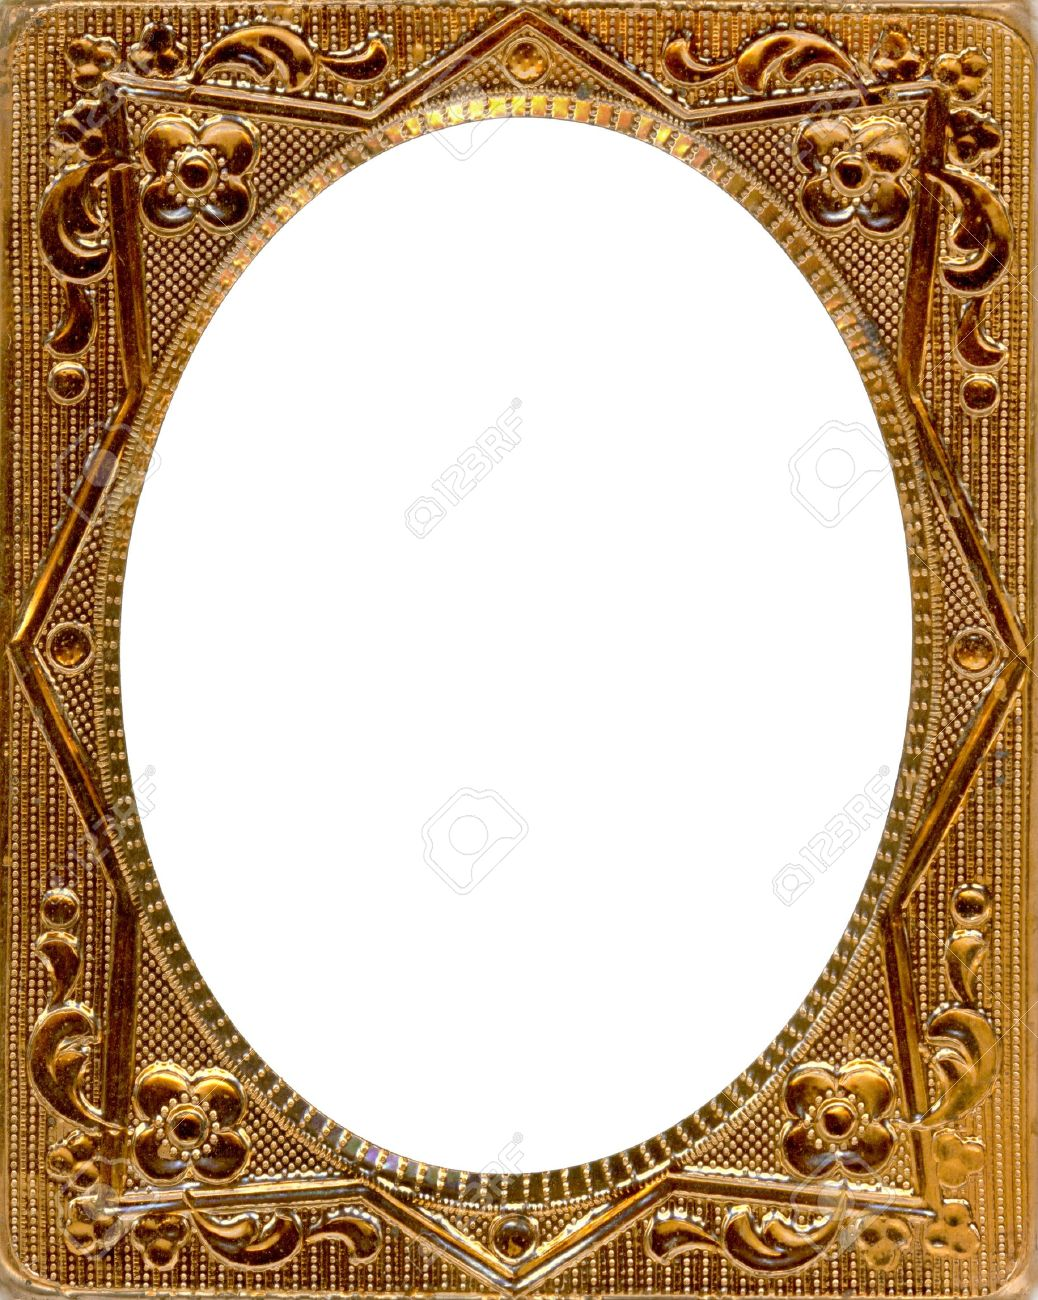 ornate gold metal picture frame from the 1850s this type of picture frame was used